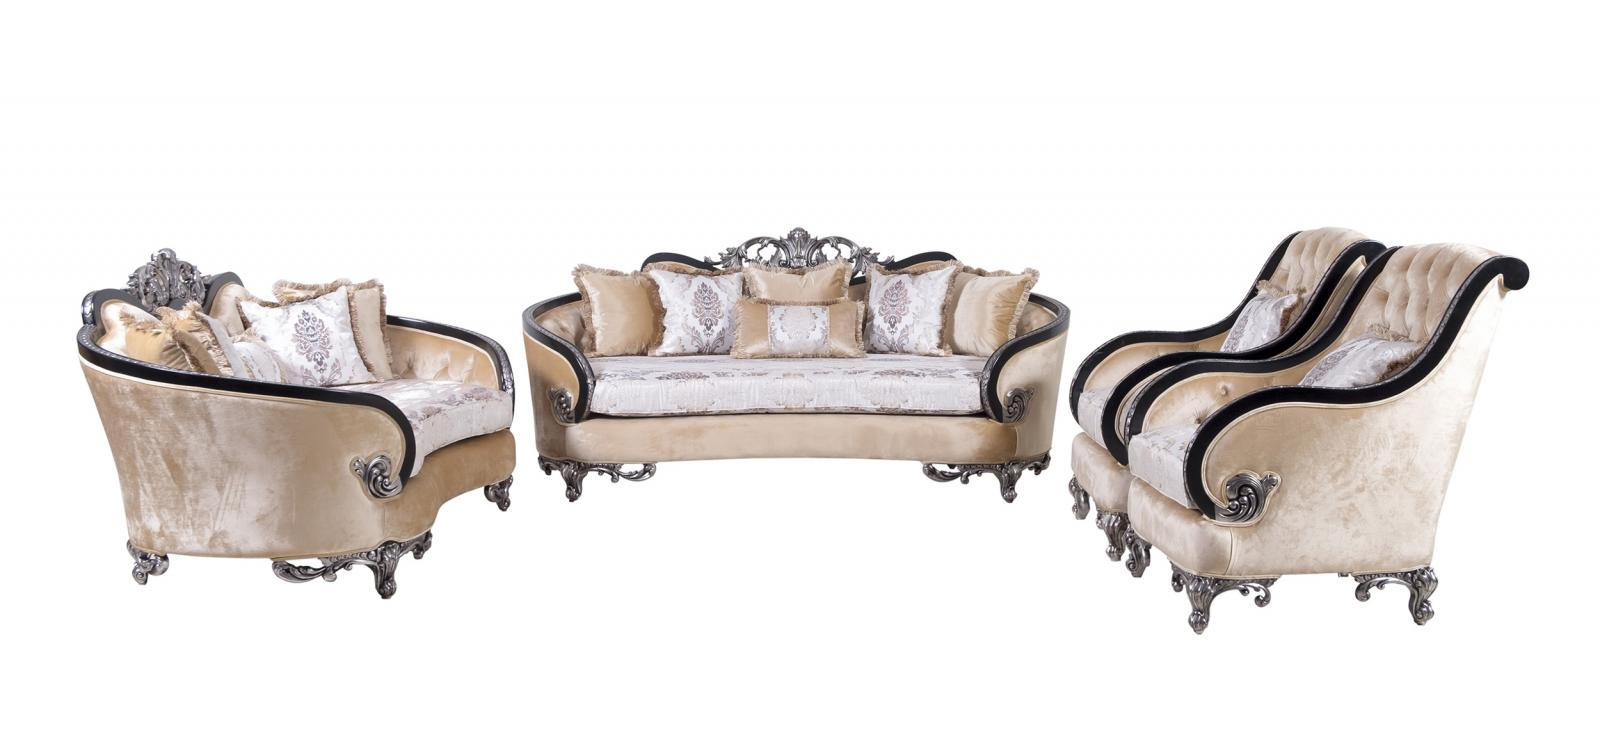 Classic  Traditional Black  Silver  Antique Wood  Solid Hardwood and Fabric Sofa Set EUROPEAN FURNITURE 35022-S-Set-4